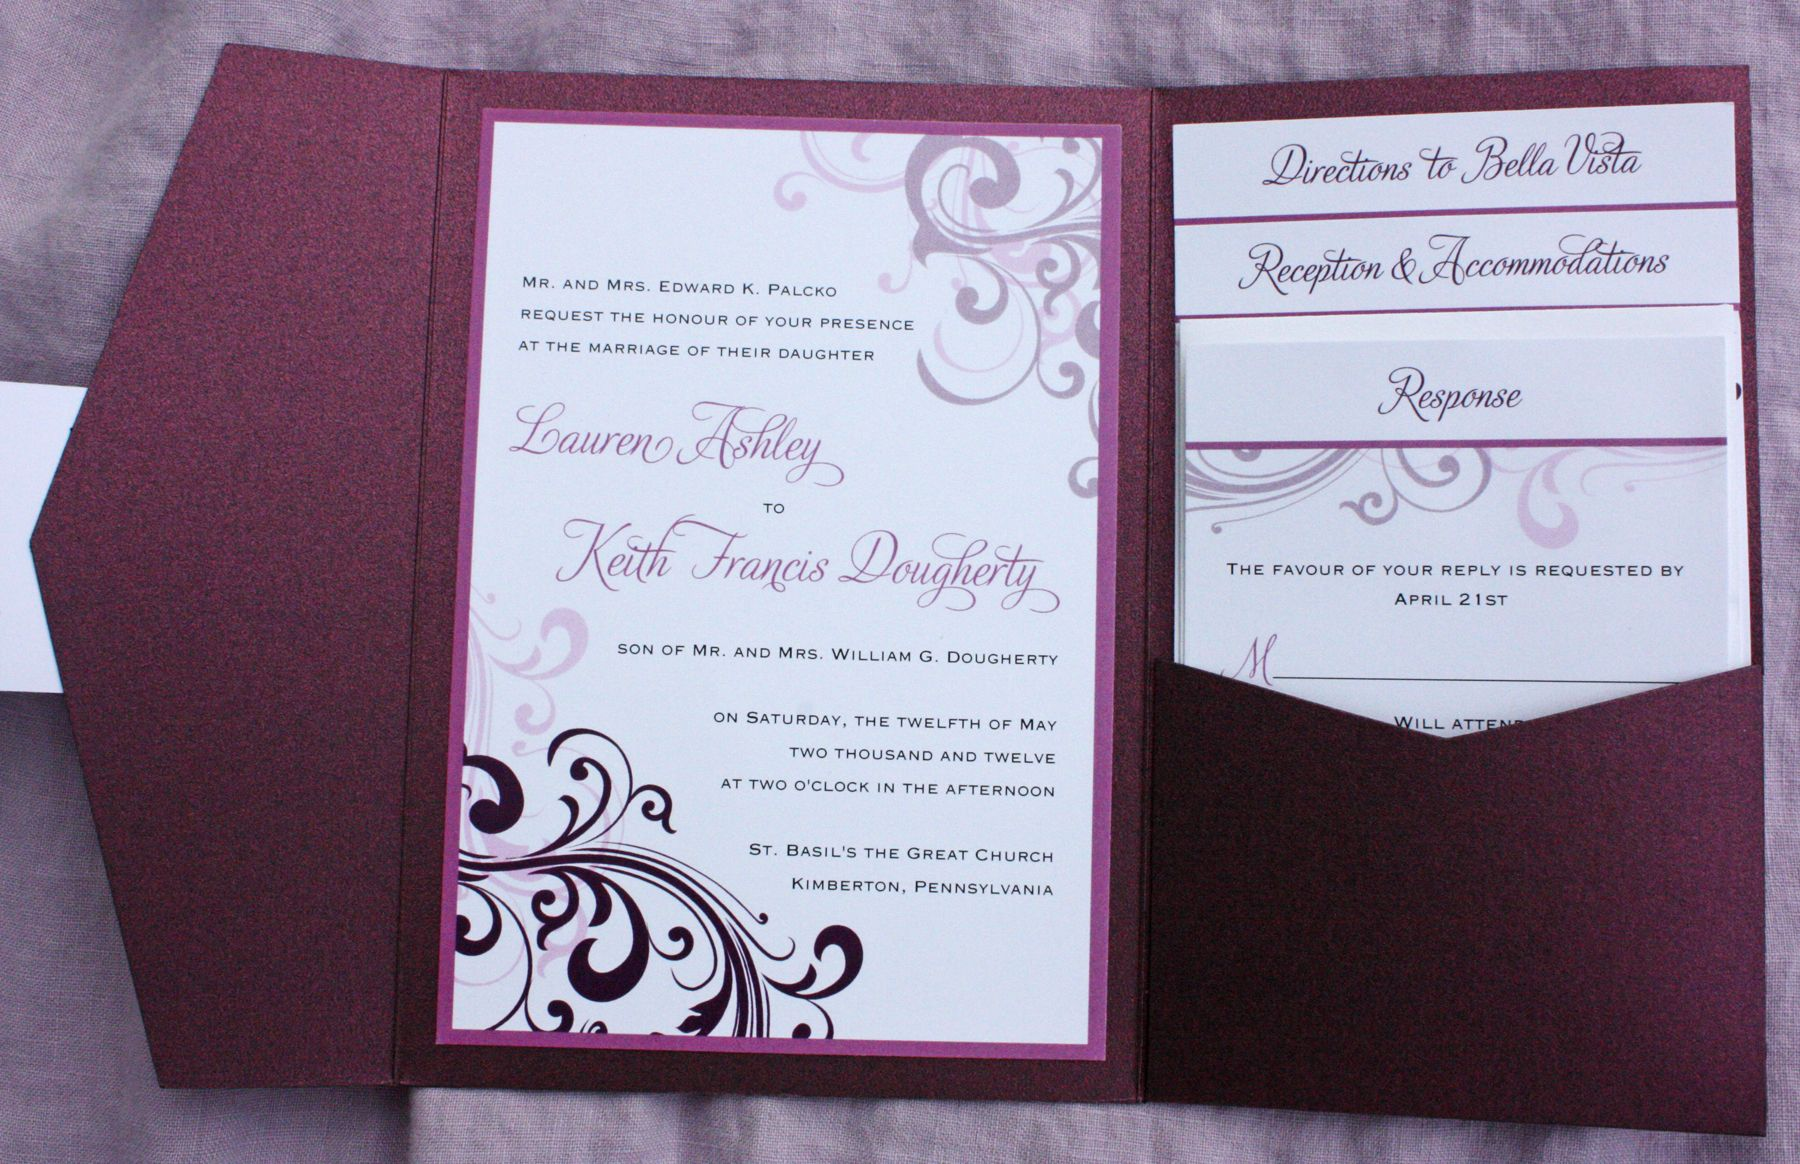 Wedding Invitations Handmade: Handmade Wedding Invitations Ideas